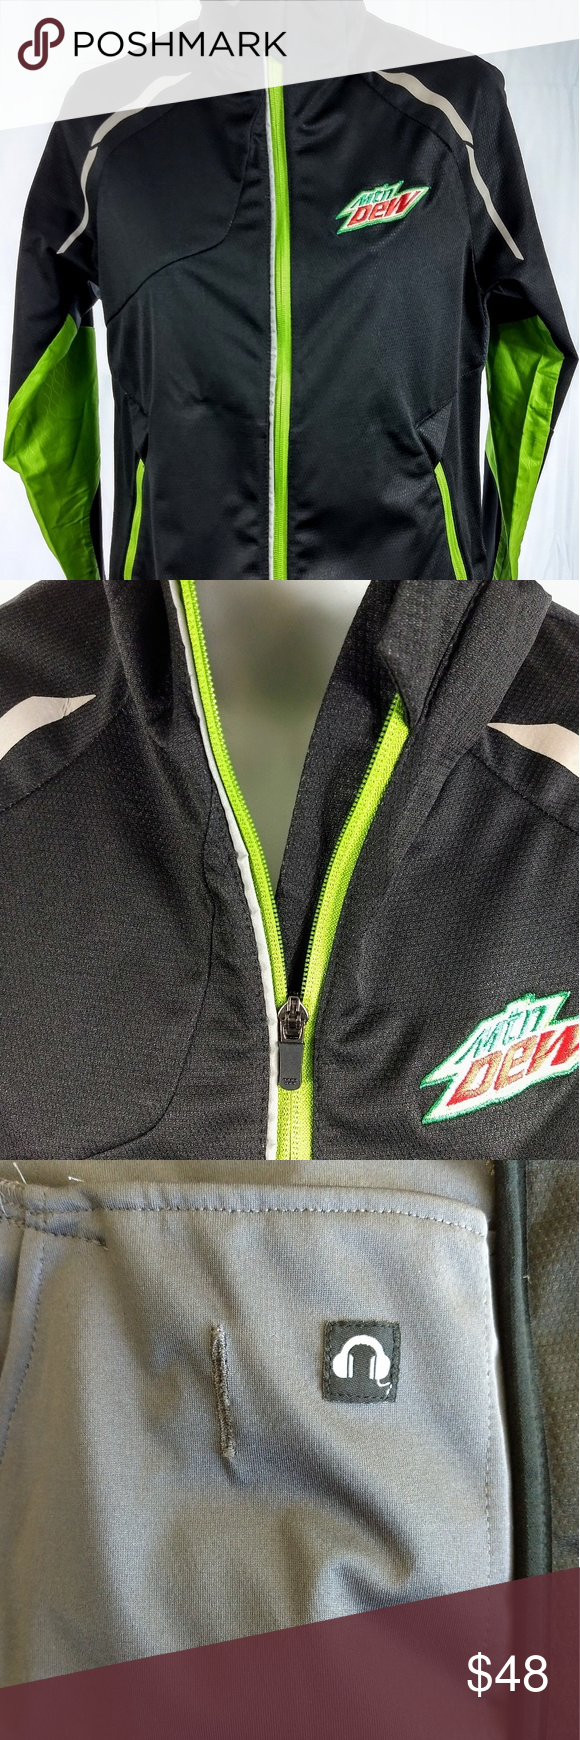 NORTH END SPORT athletic training jacket XS/TP Women's